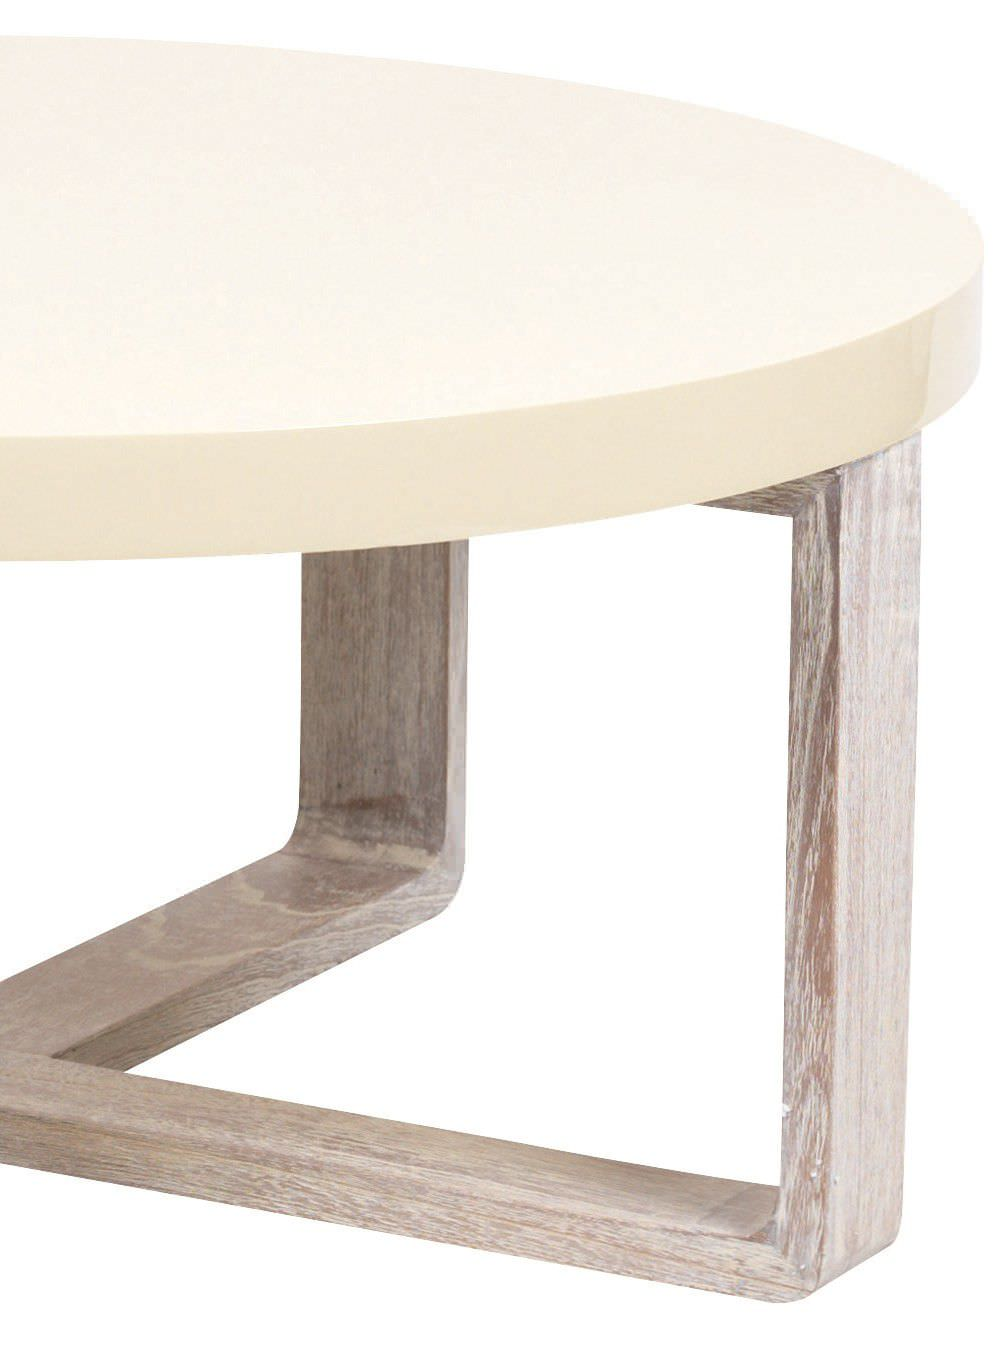 Table basse blanche pied bois 14 id es de d coration int rieure french decor Table basse planche bois